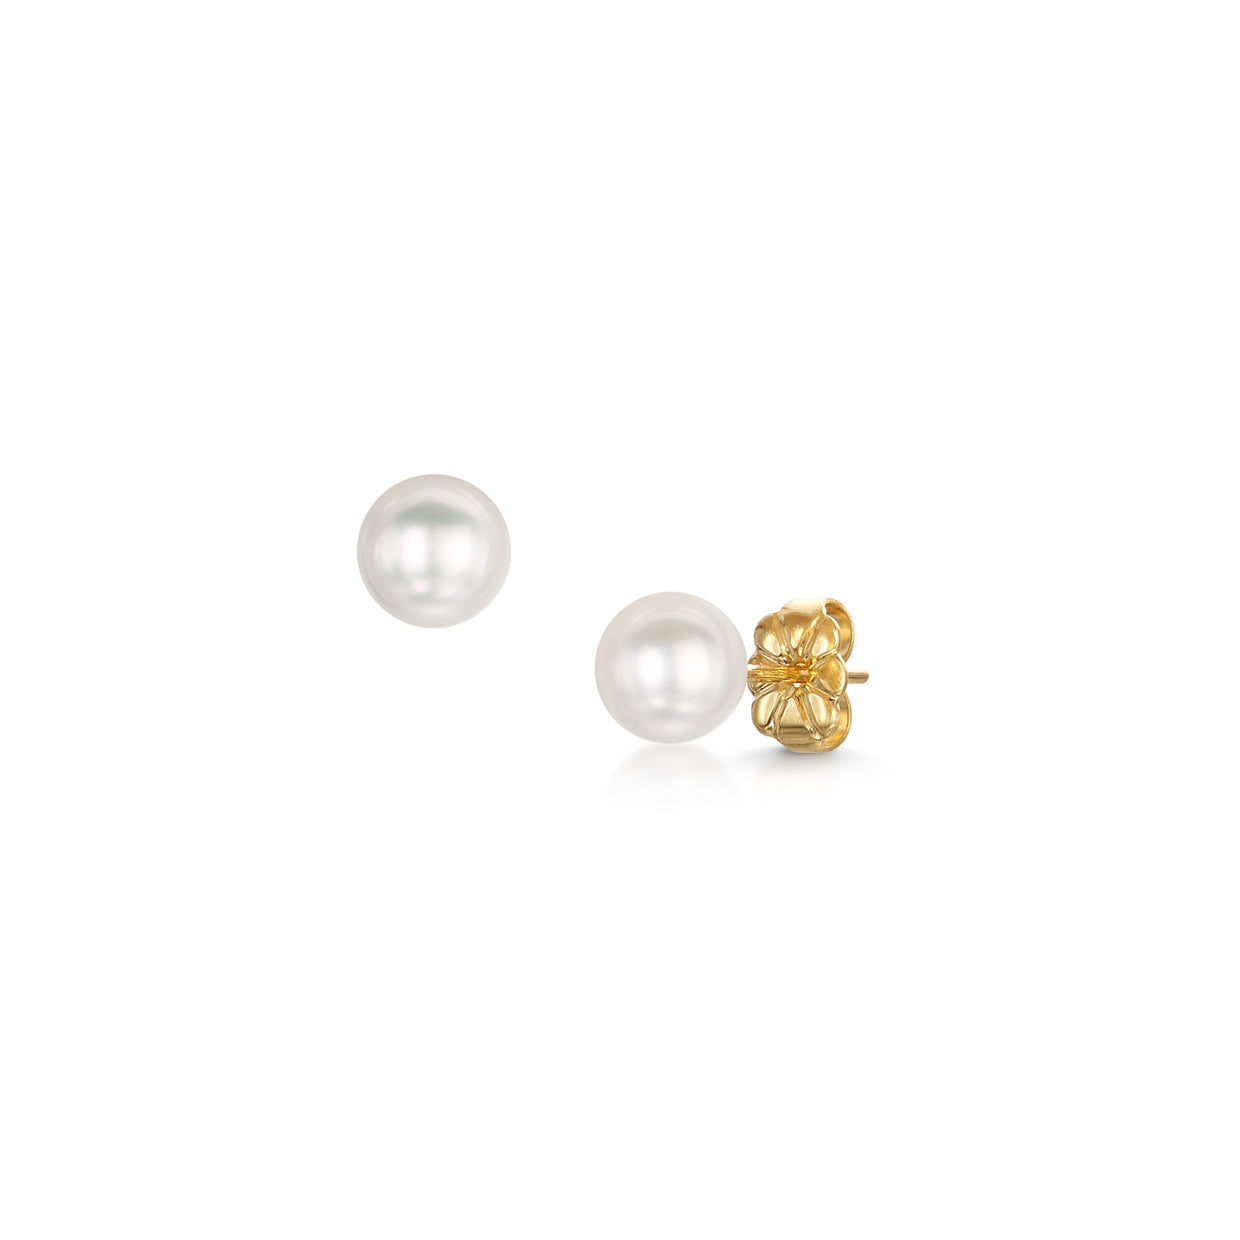 6x6.5mm Pearl Stud Earrings In 18ct Yellow Gold - Hamilton & Inches